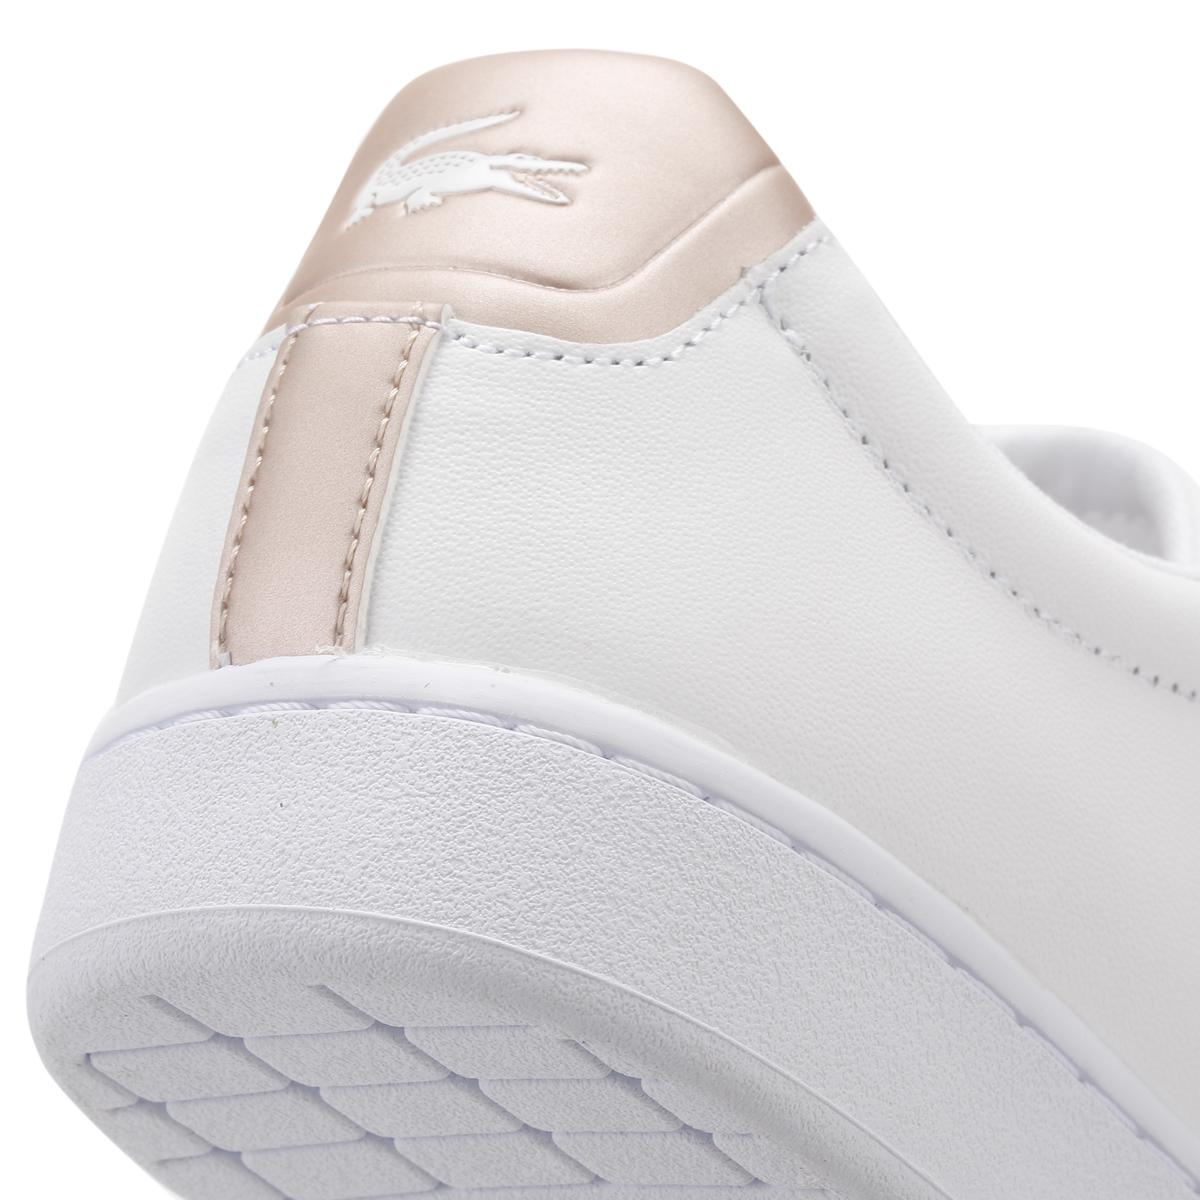 adea6c744ff5 Lyst - Lacoste Womens White light Pink Carnaby Evo 217 2 Spw ...